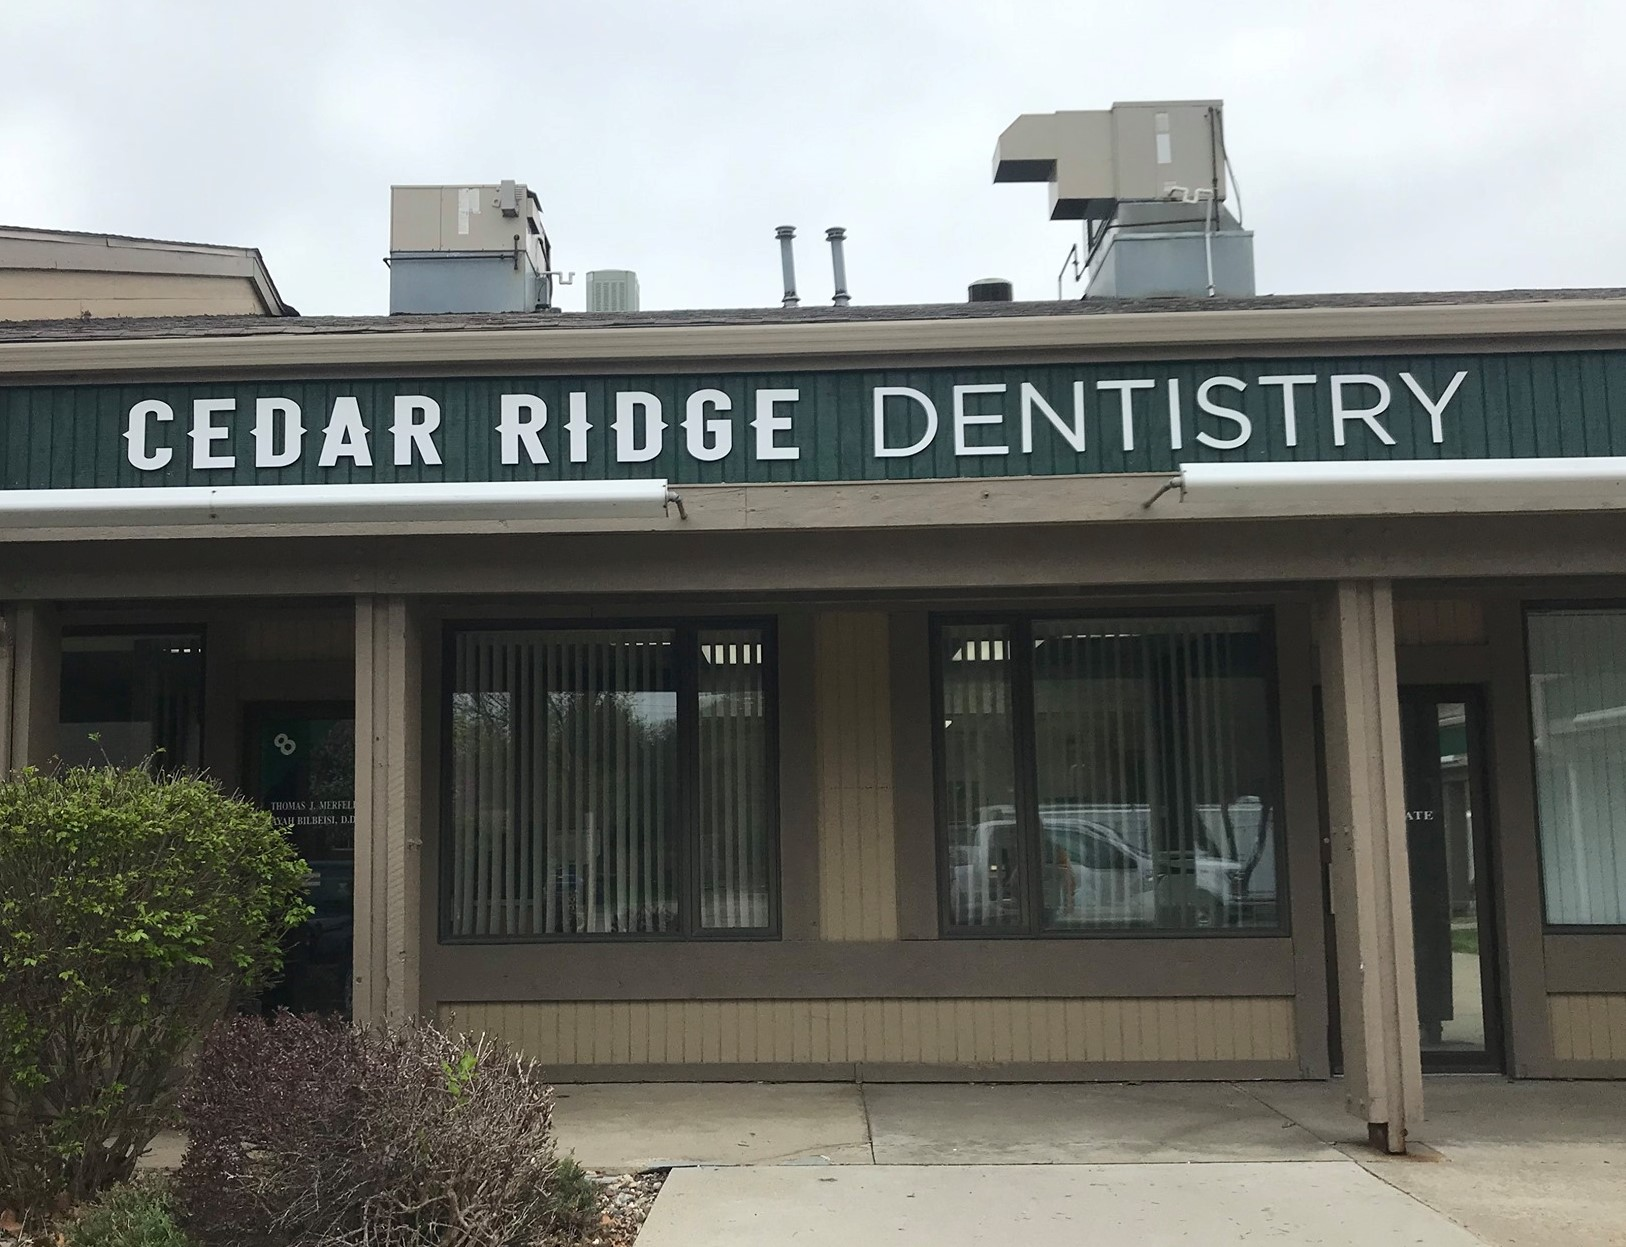 Cedar Ridge Dentistry